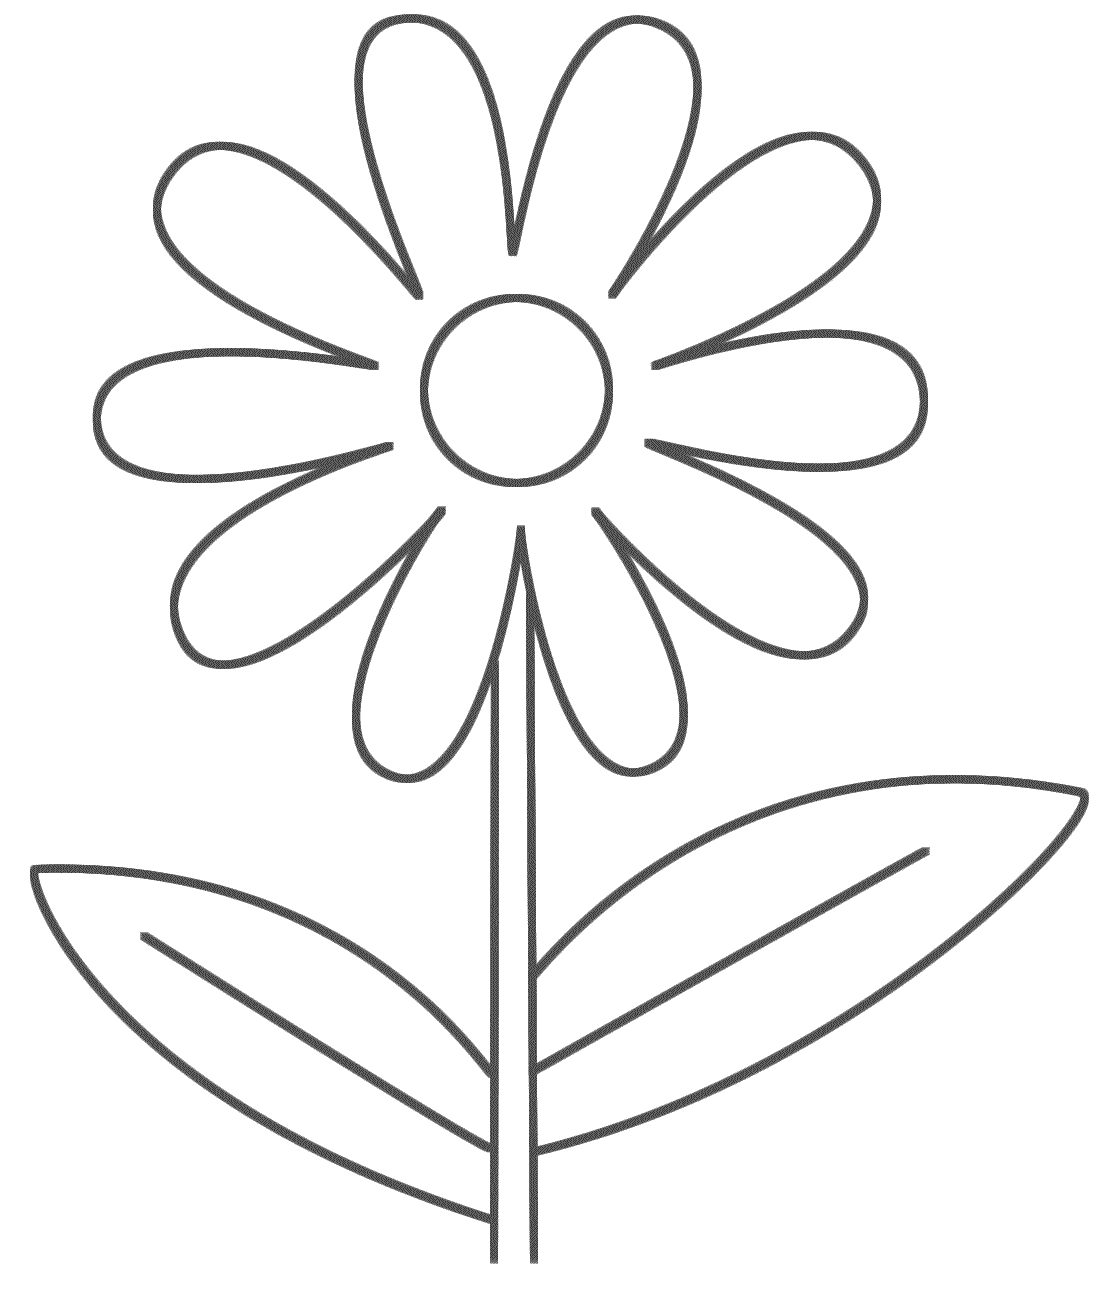 Free Flower Line Drawing, Download Free Clip Art, Free Clip Art On